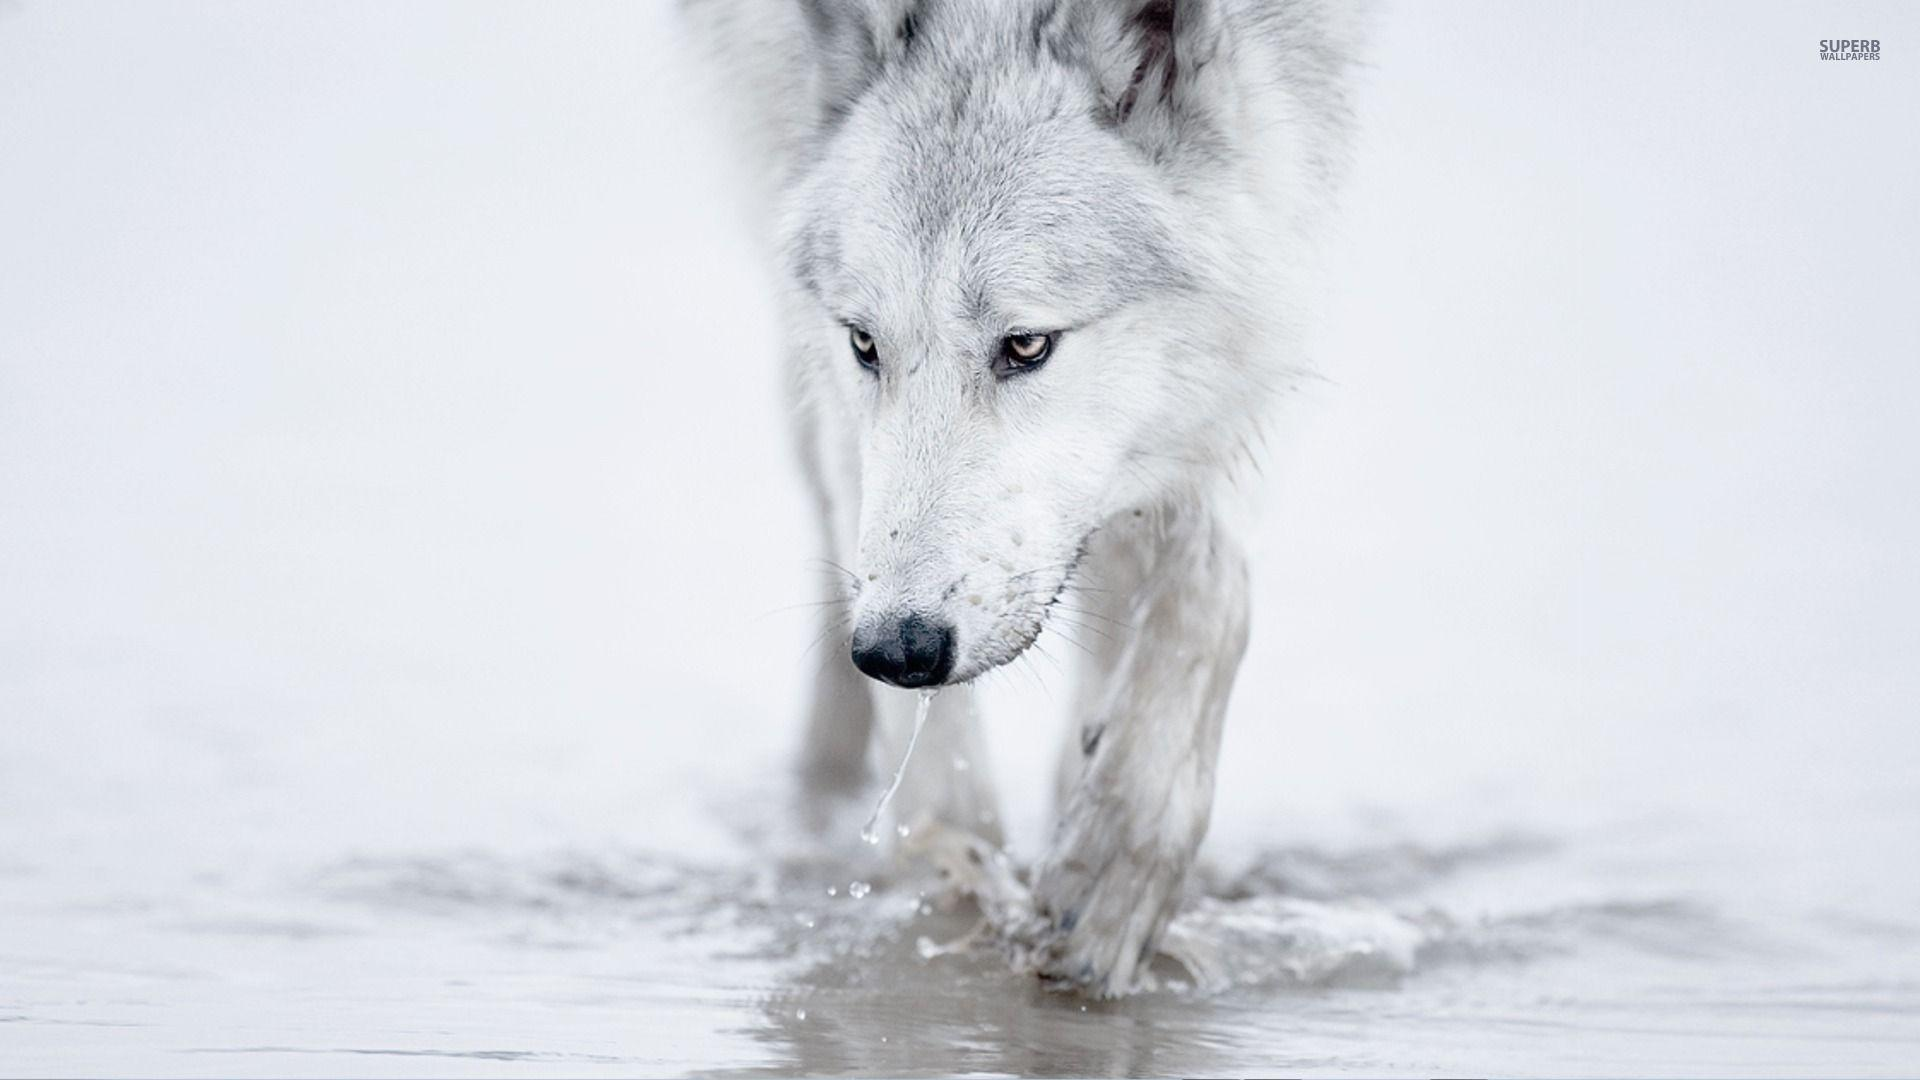 White Wolf Wallpapers High Quality Resolution Is Cool Wallpapers